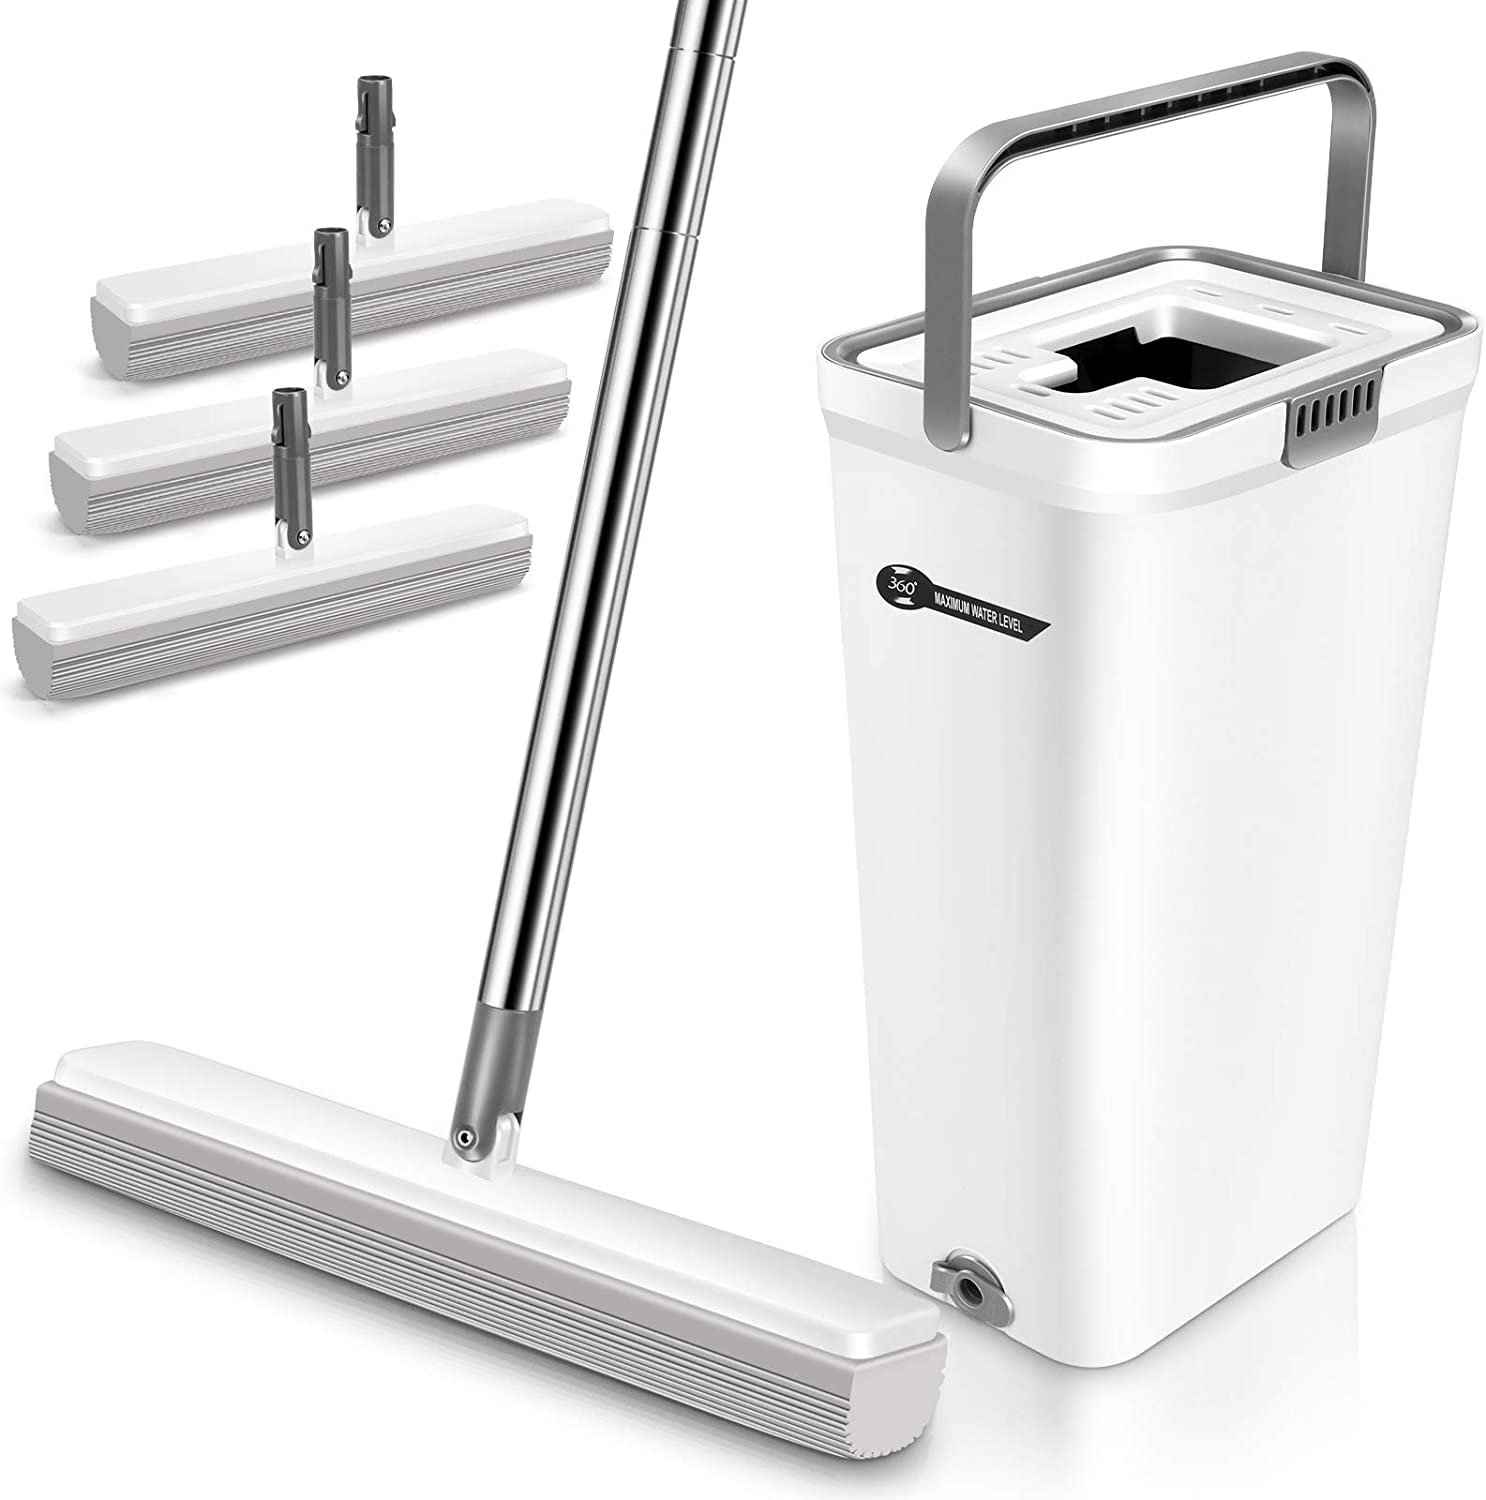 AONE Sponge Mop and Bucket Set for Floor Cleaning - Super Absorbent PVA Mop with 3 Sponge Heads for Home Tile Floor Bathroom - (White)